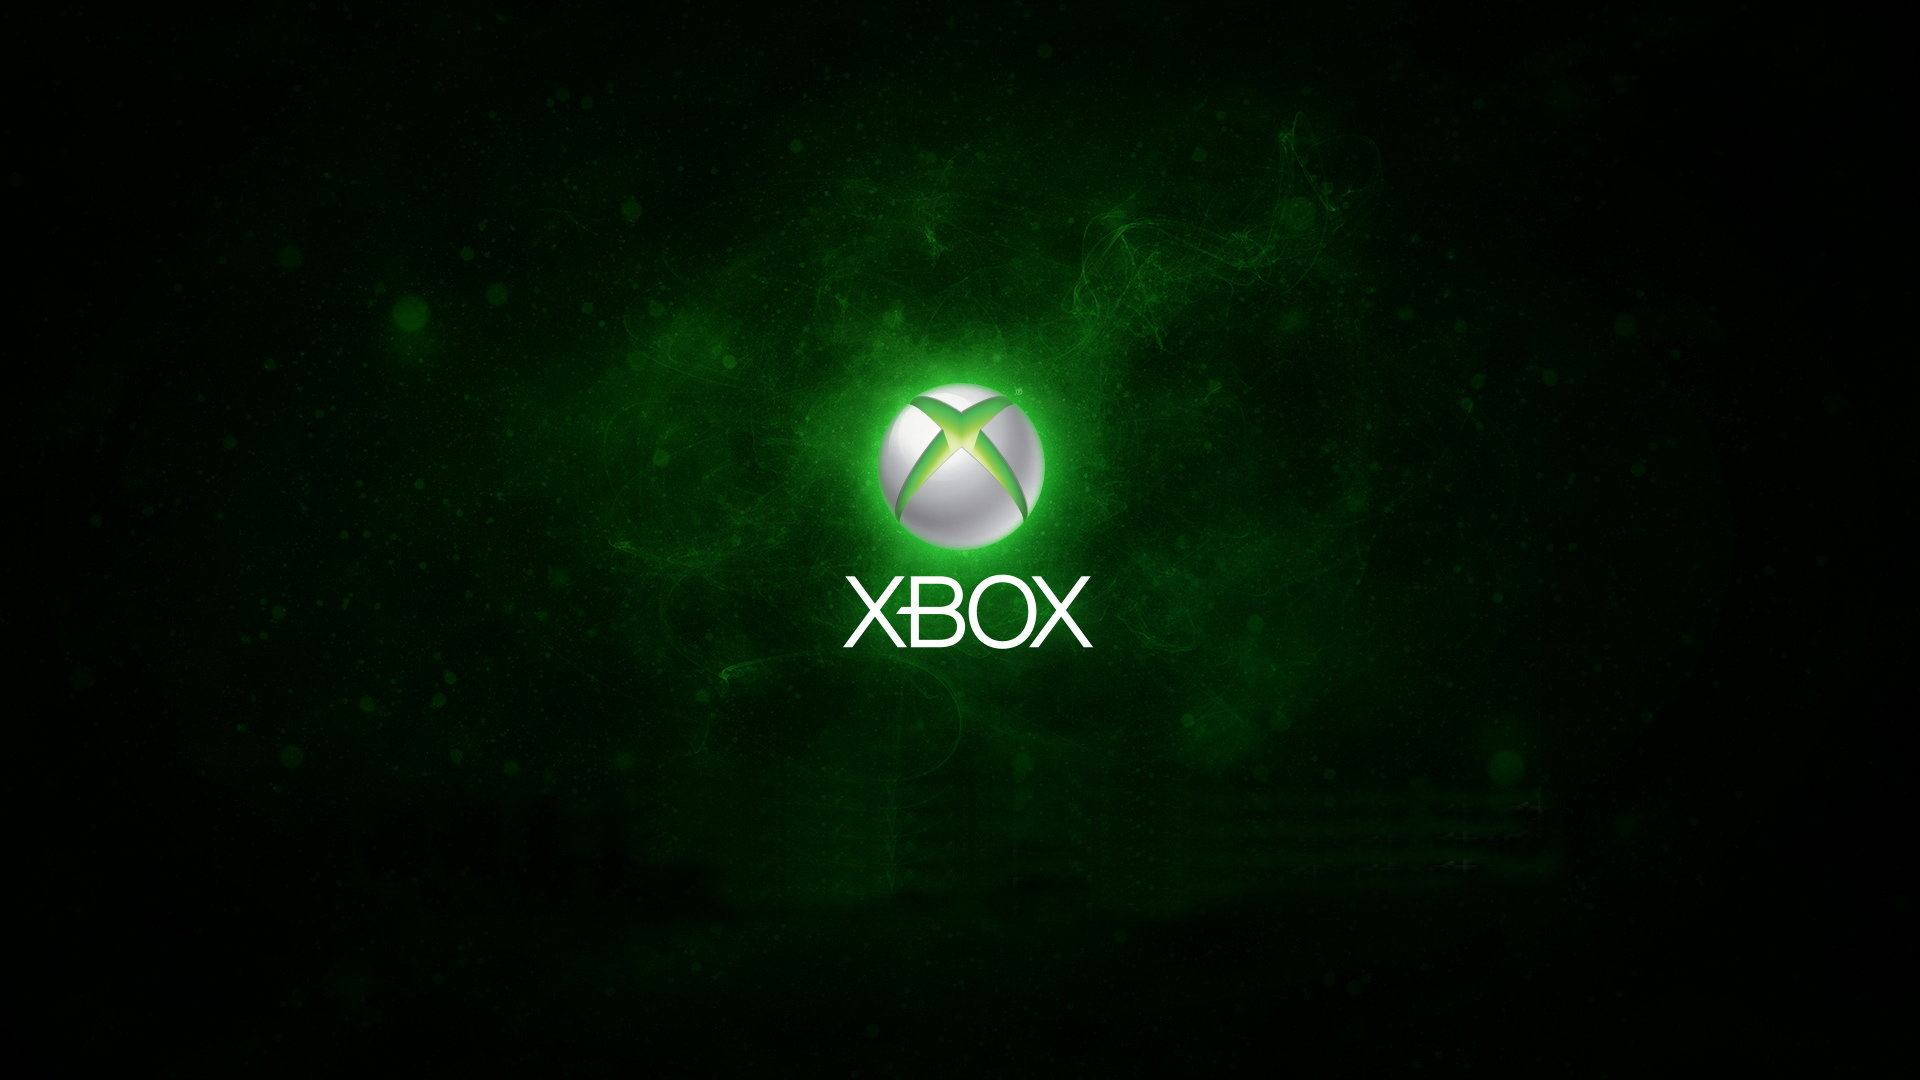 Xbox HD Wallpapers 1920x1080